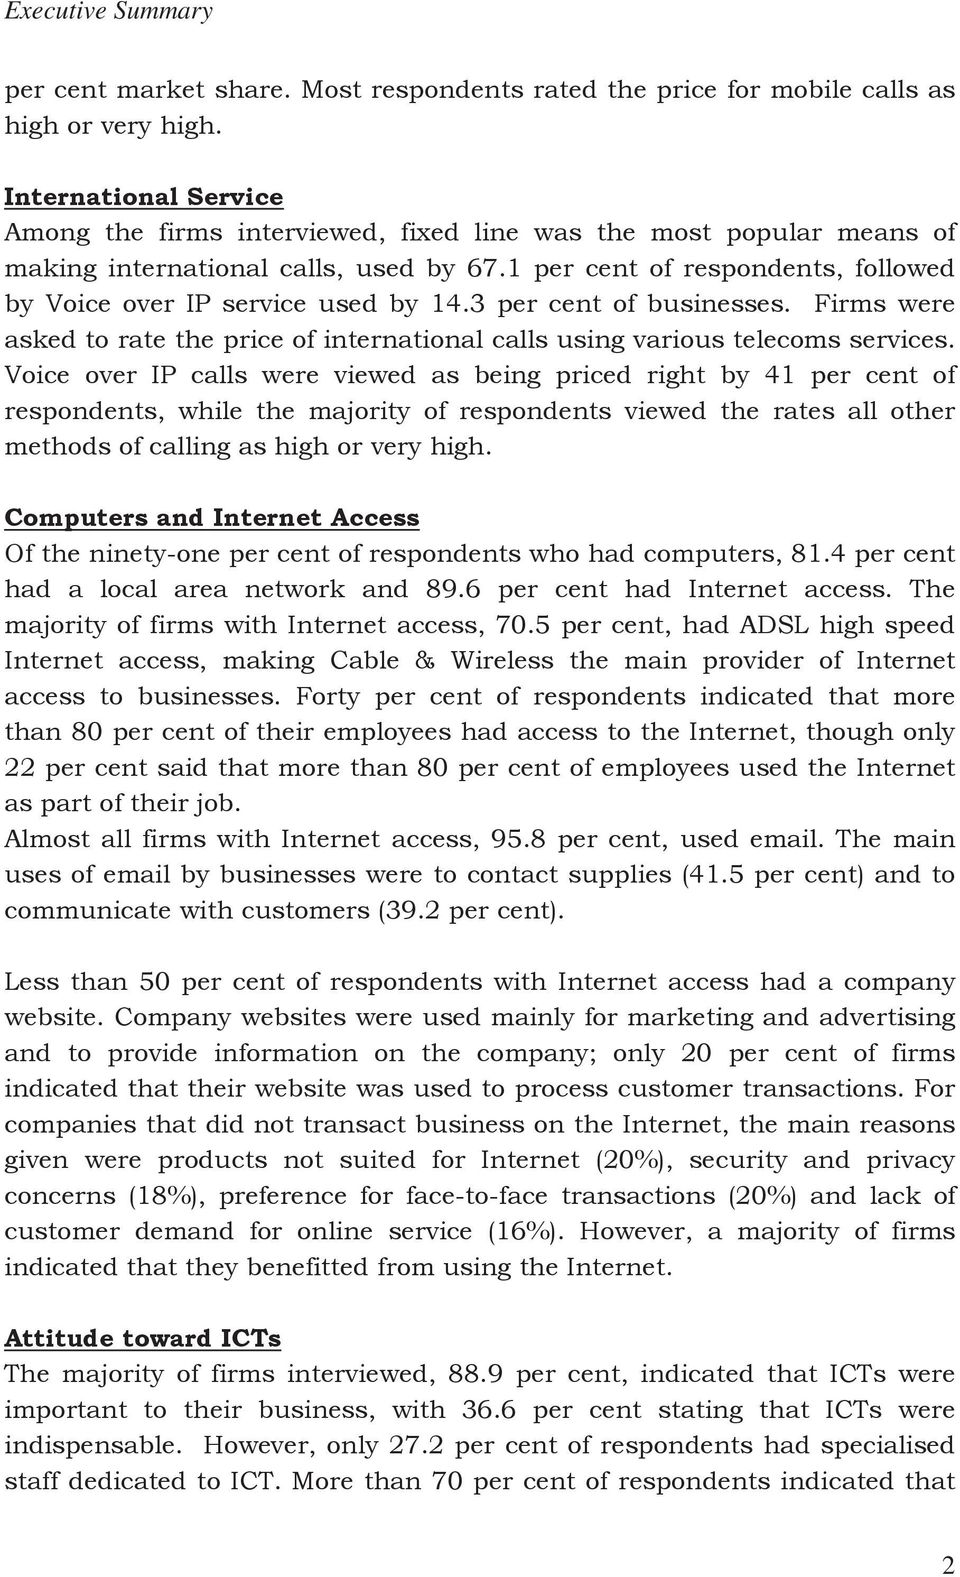 1 per cent of respondents, followed by Voice over IP service used by 14.3 per cent of businesses. Firms were asked to rate the price of international calls using various telecoms services.